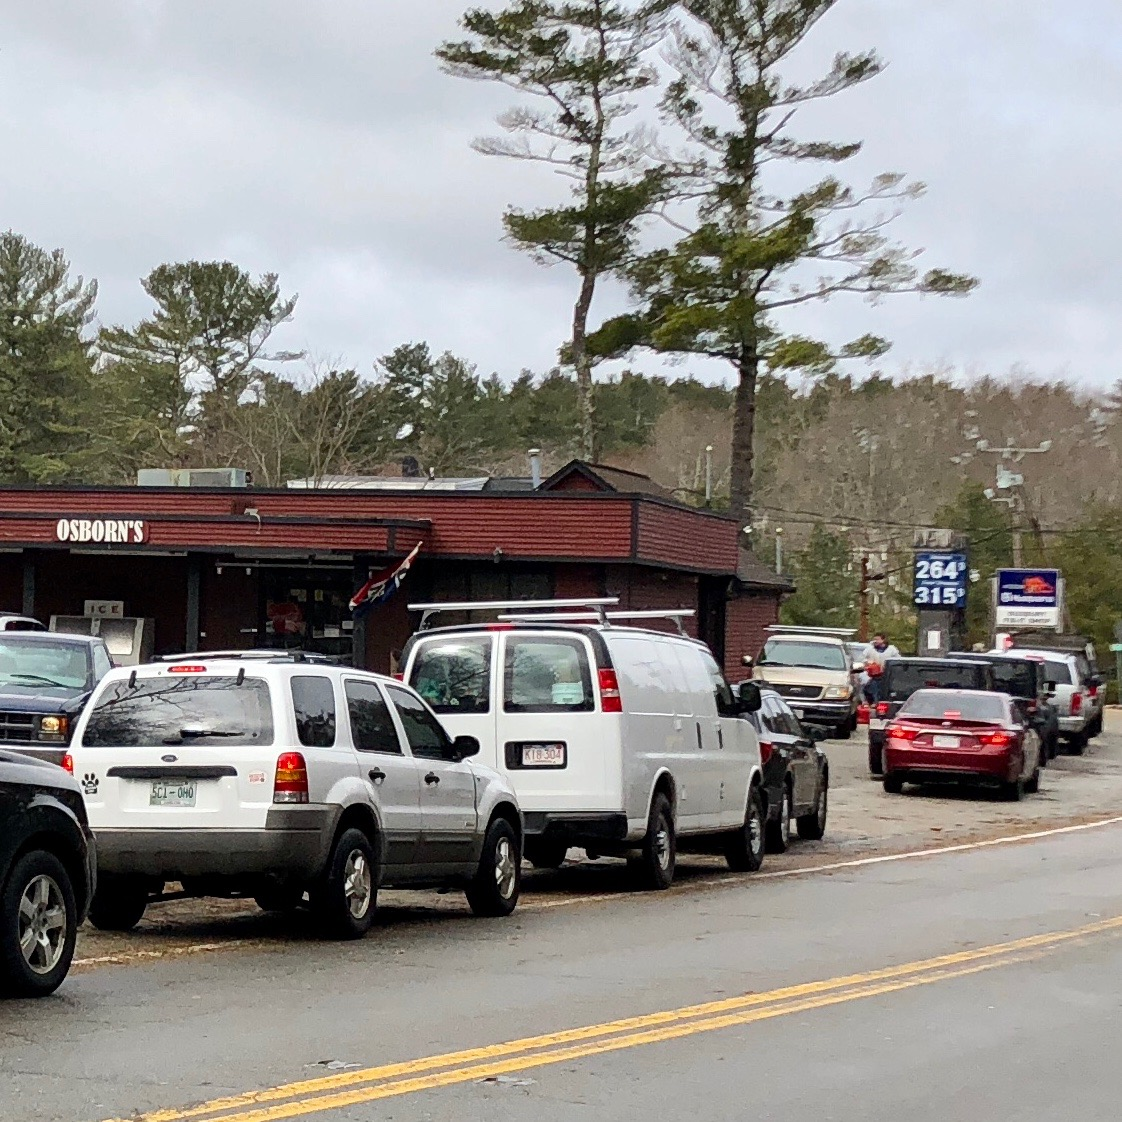 Incredibly, Osborn's general store on route 53 was open for business on Saturday. I drove all around Duxbury, Kingston, Pembroke; all businesses and homes were without power.